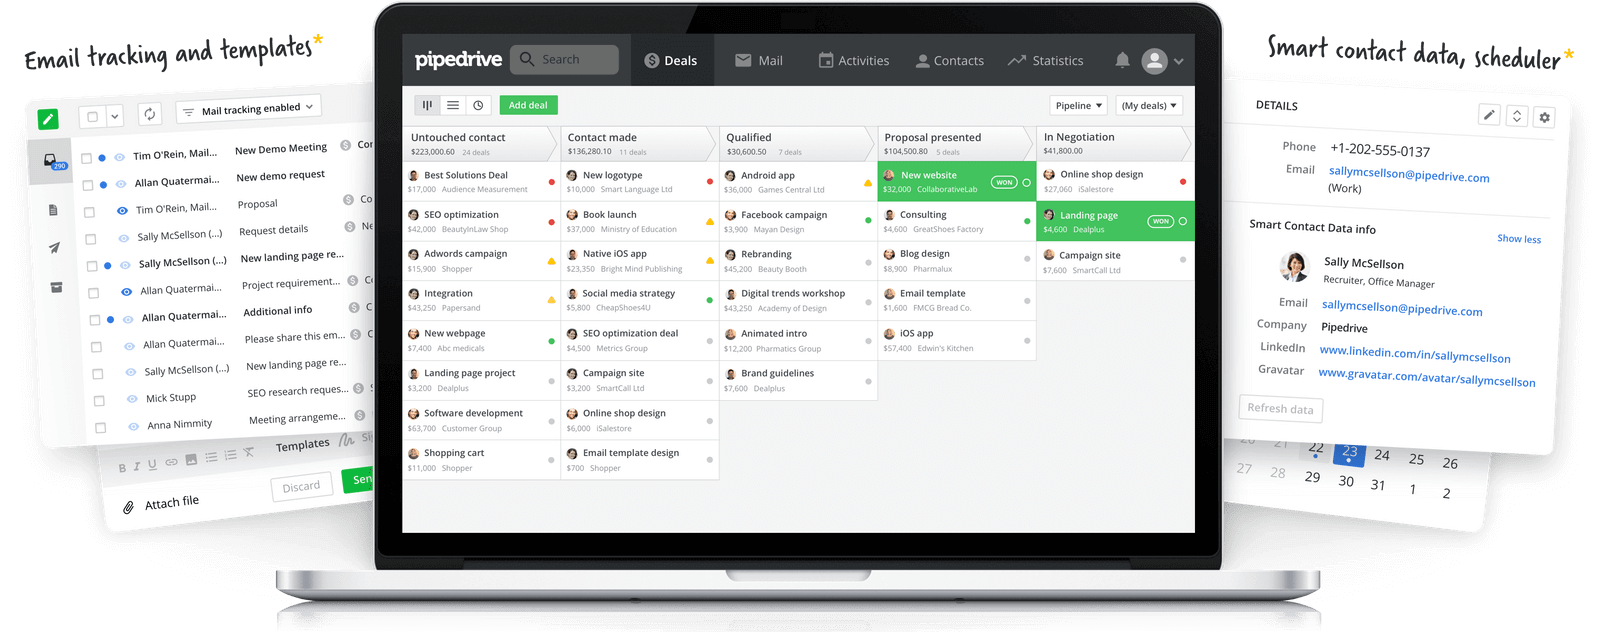 Best CRM for Small Business Startups pipedrive